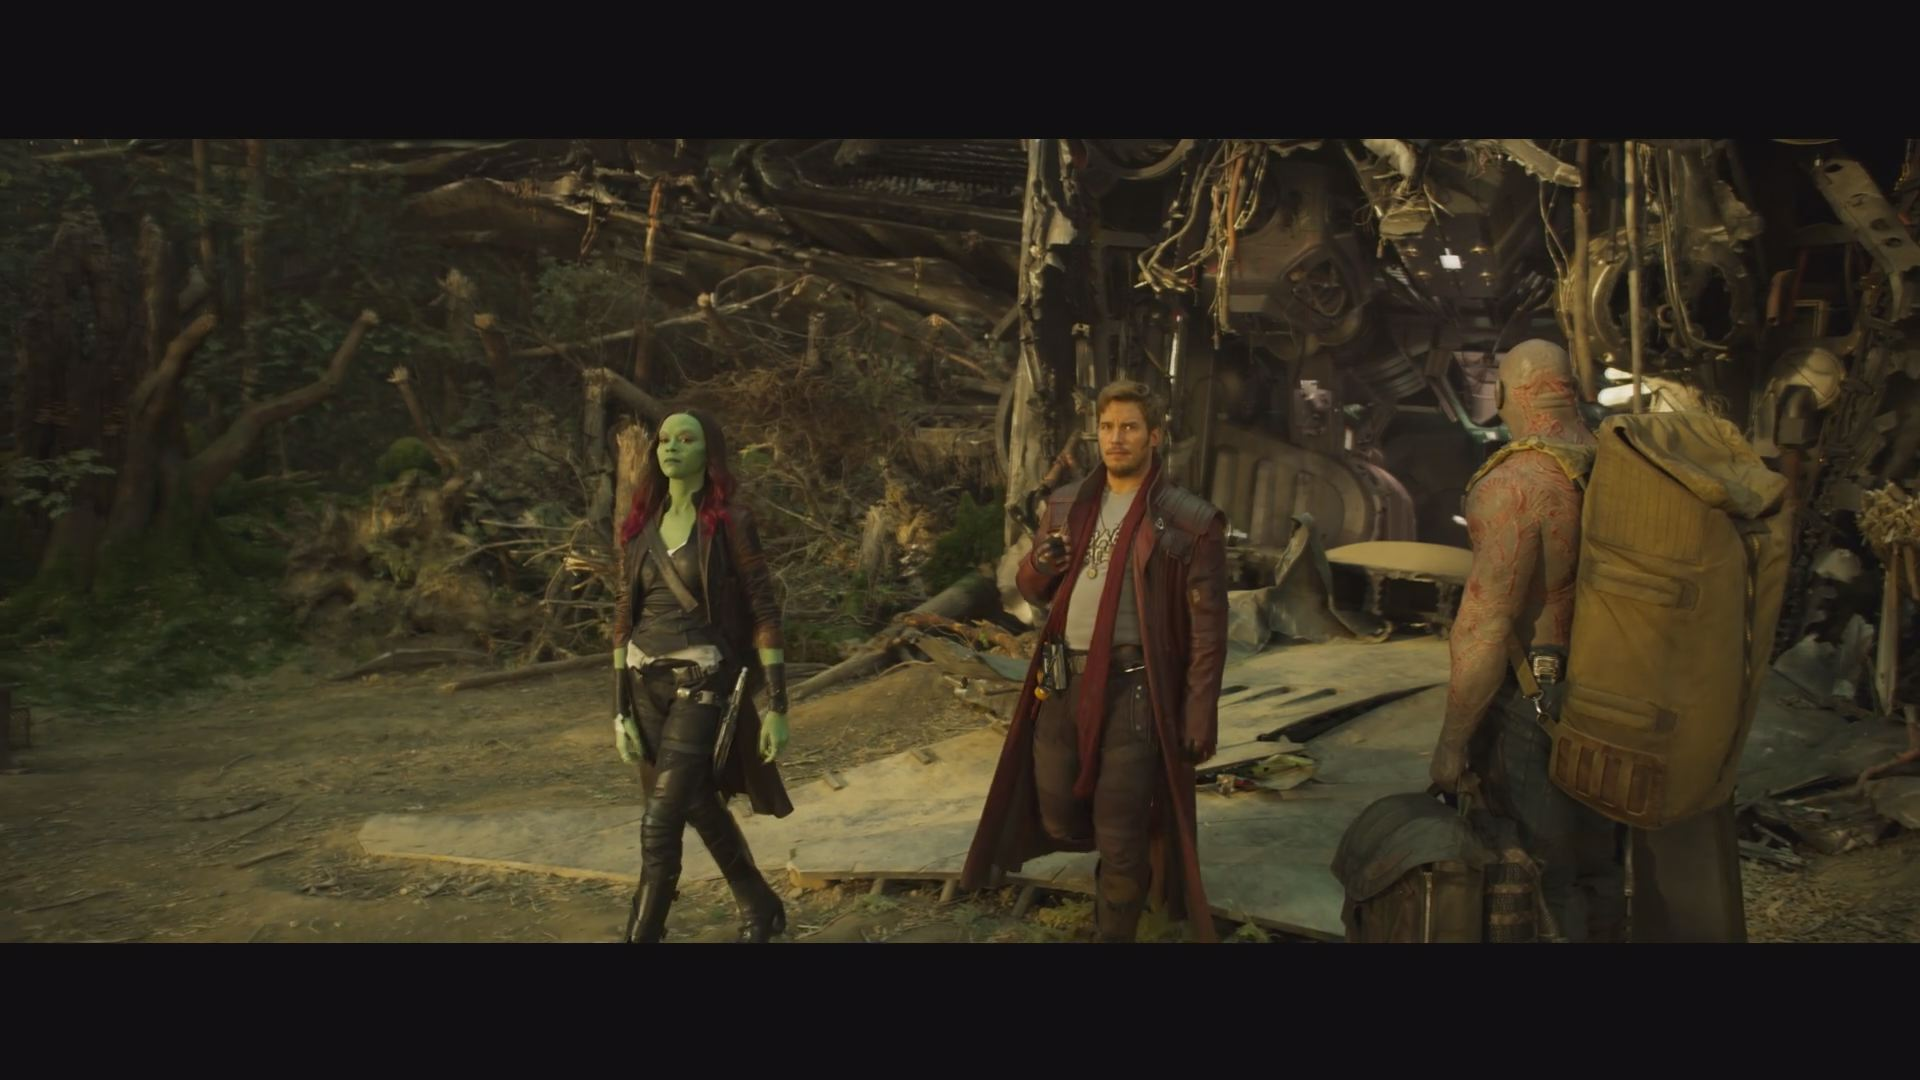 5 Things To Love About the New Guardians Teaser Trailer